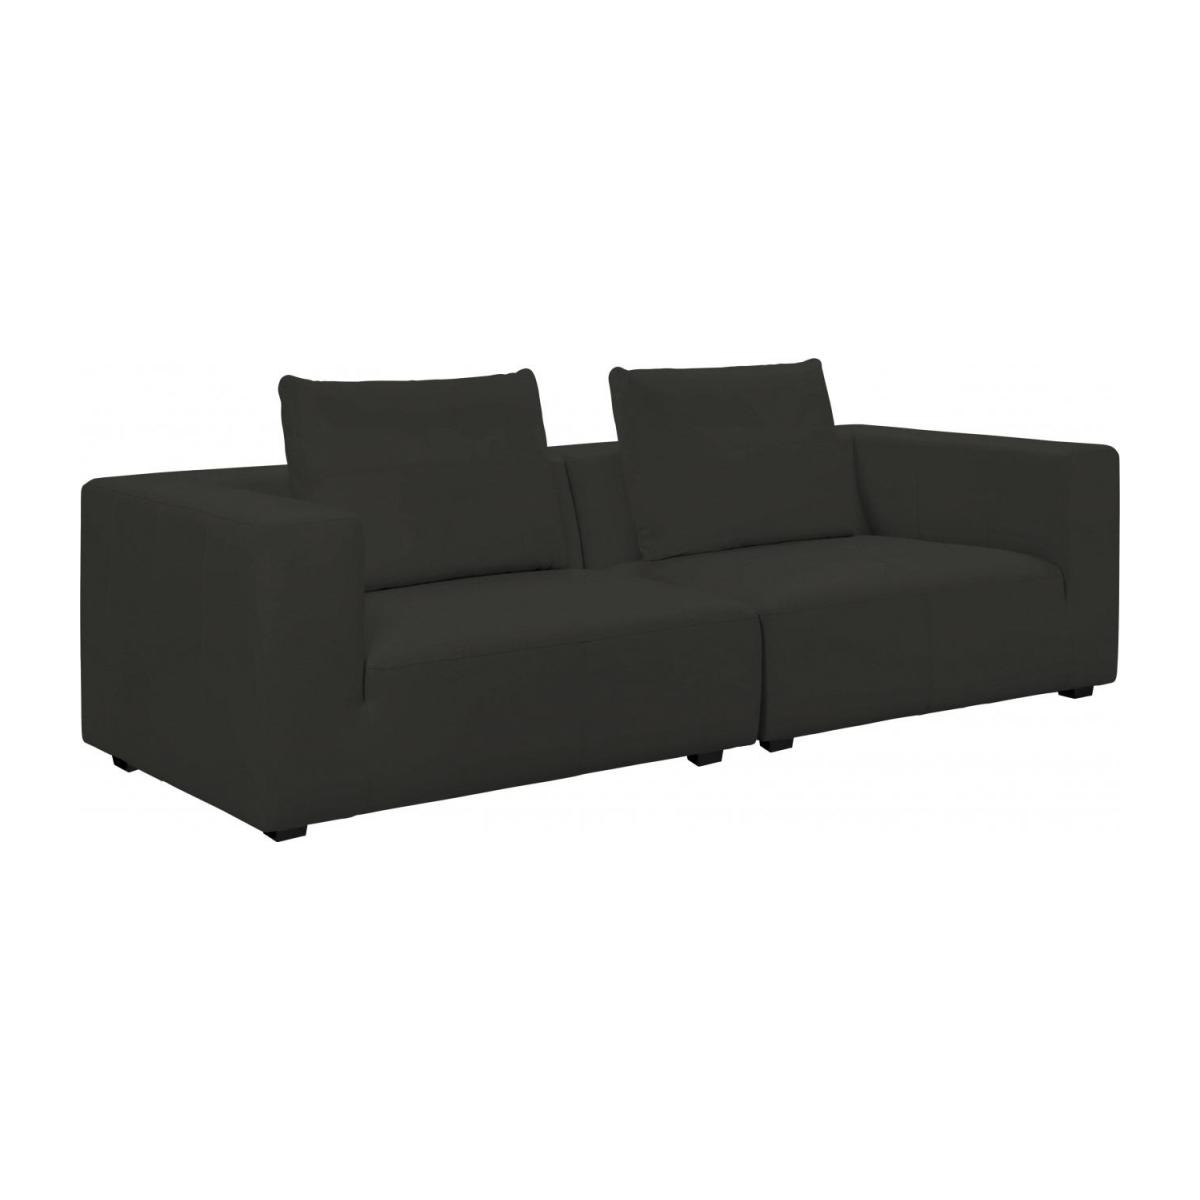 1,5 seater sofa with left armrest in Eton veined leather, brown n°9